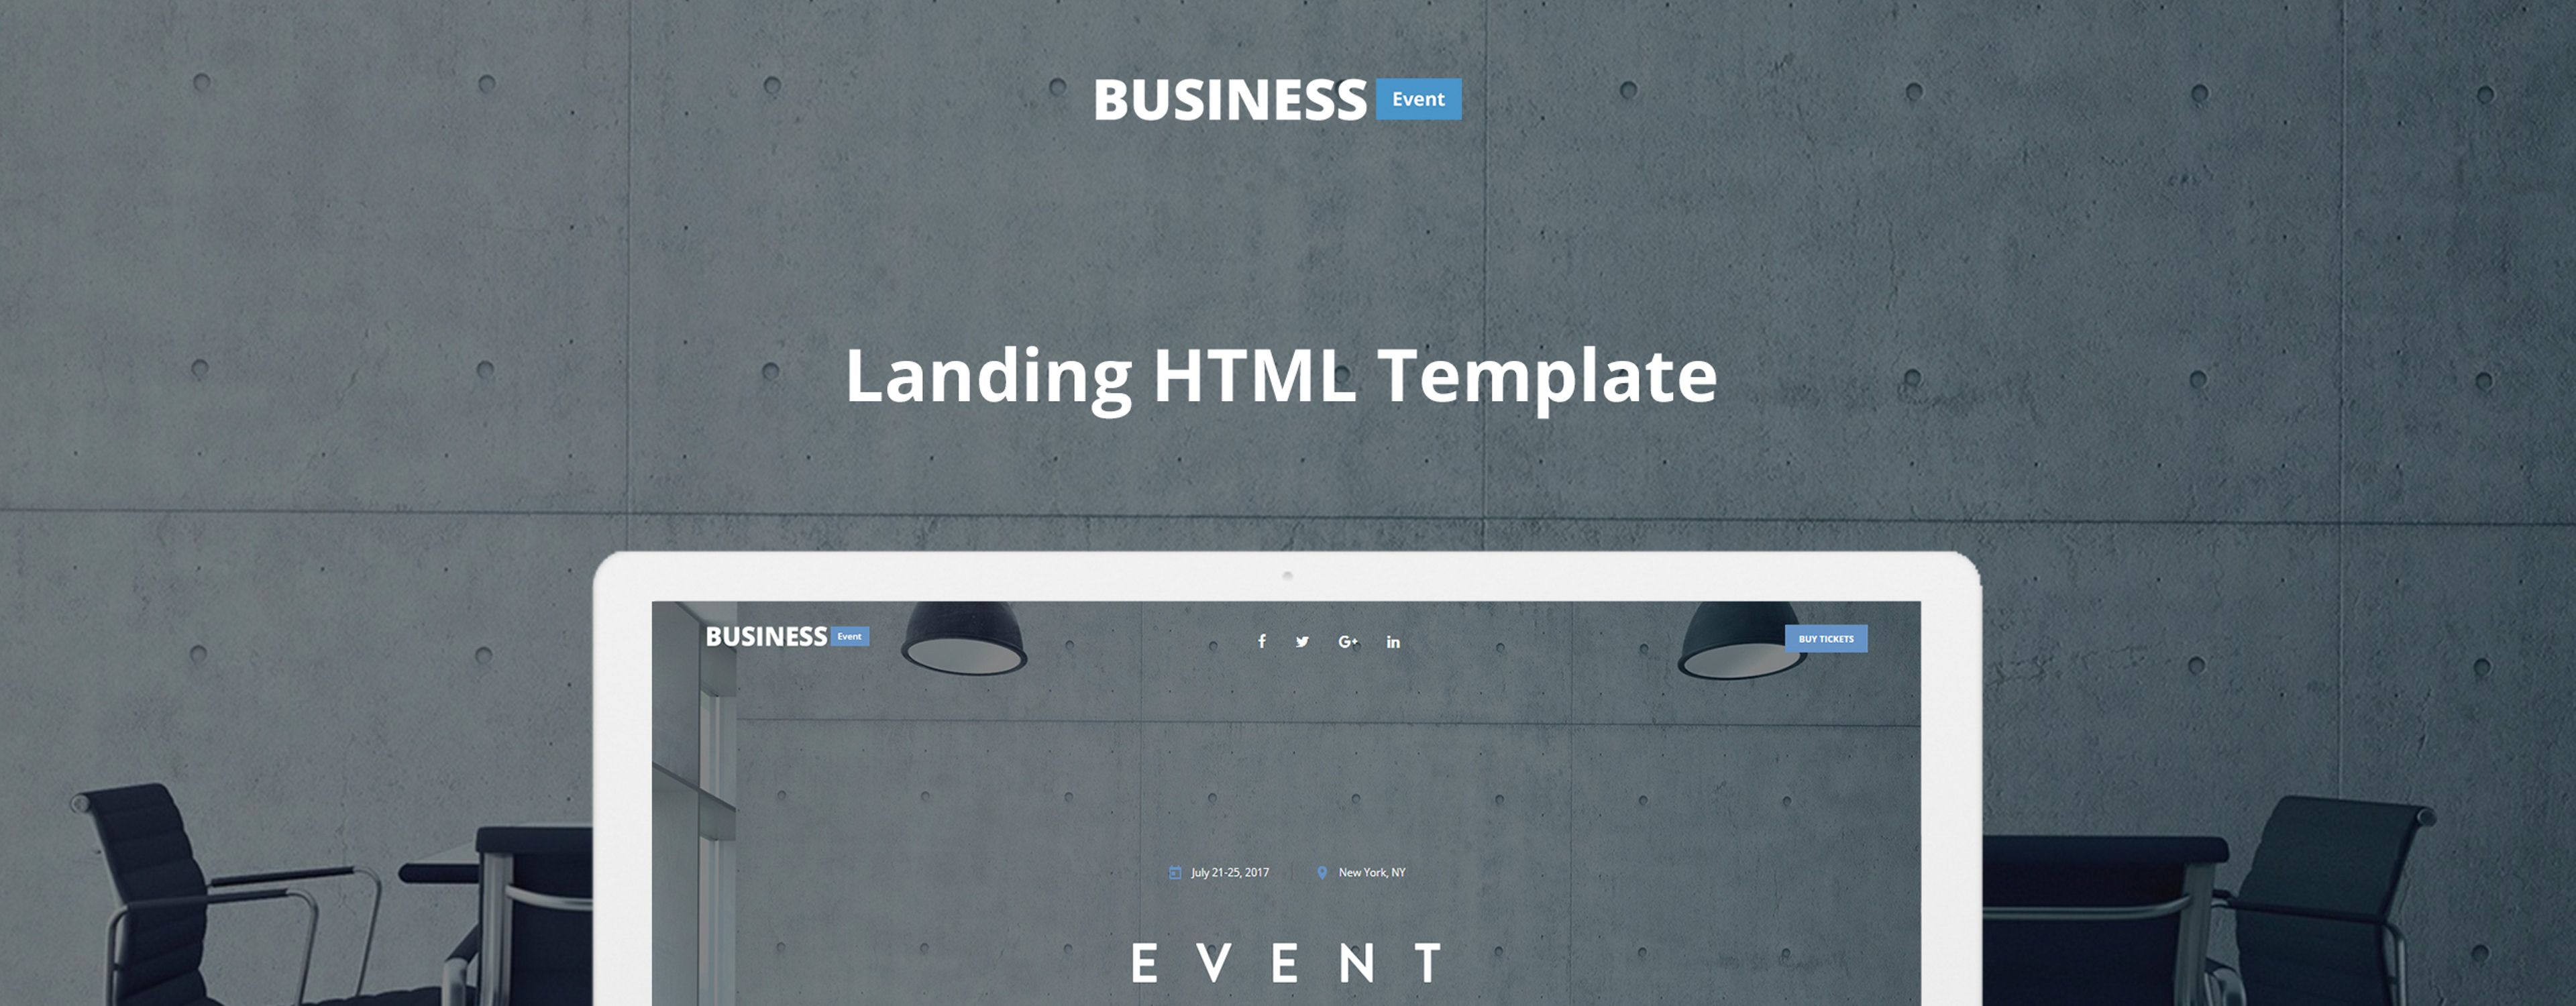 Business Event - Event Planner Landing Page Template